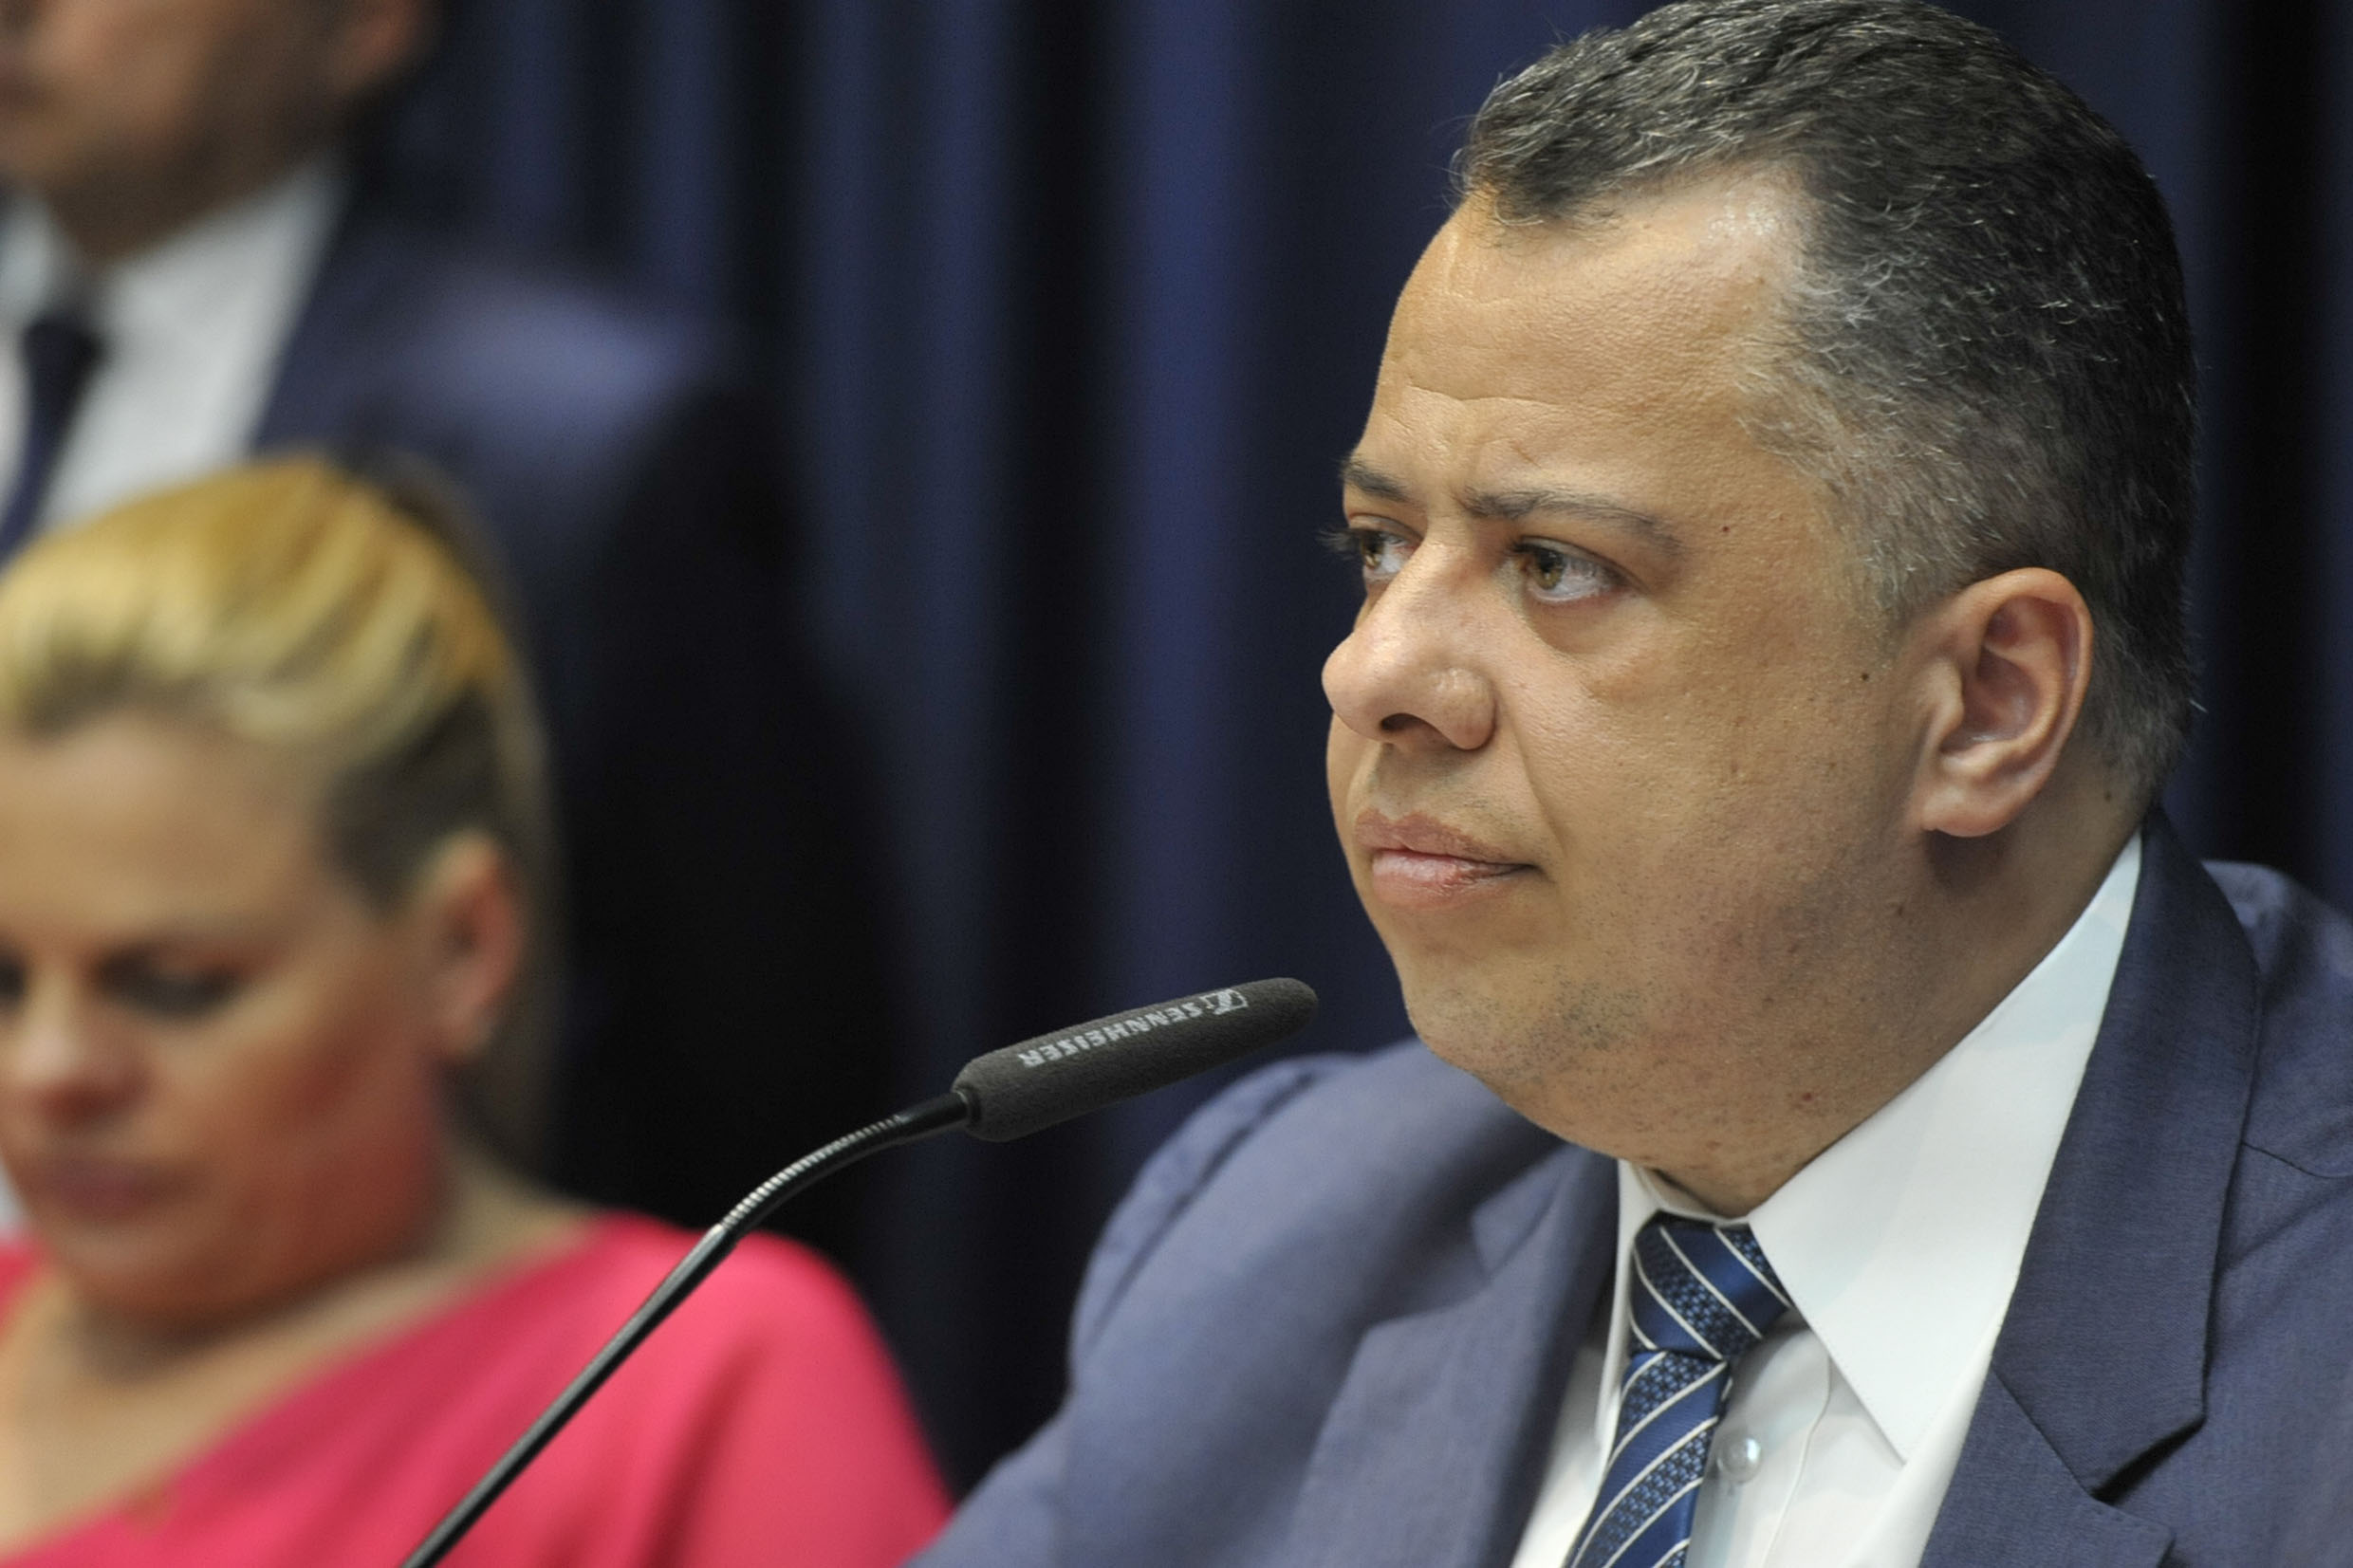 Wellington Moura preside a CPI<a style='float:right' href='https://www3.al.sp.gov.br/repositorio/noticia/N-11-2019/fg243271.jpg' target=_blank><img src='/_img/material-file-download-white.png' width='14px' alt='Clique para baixar a imagem'></a>